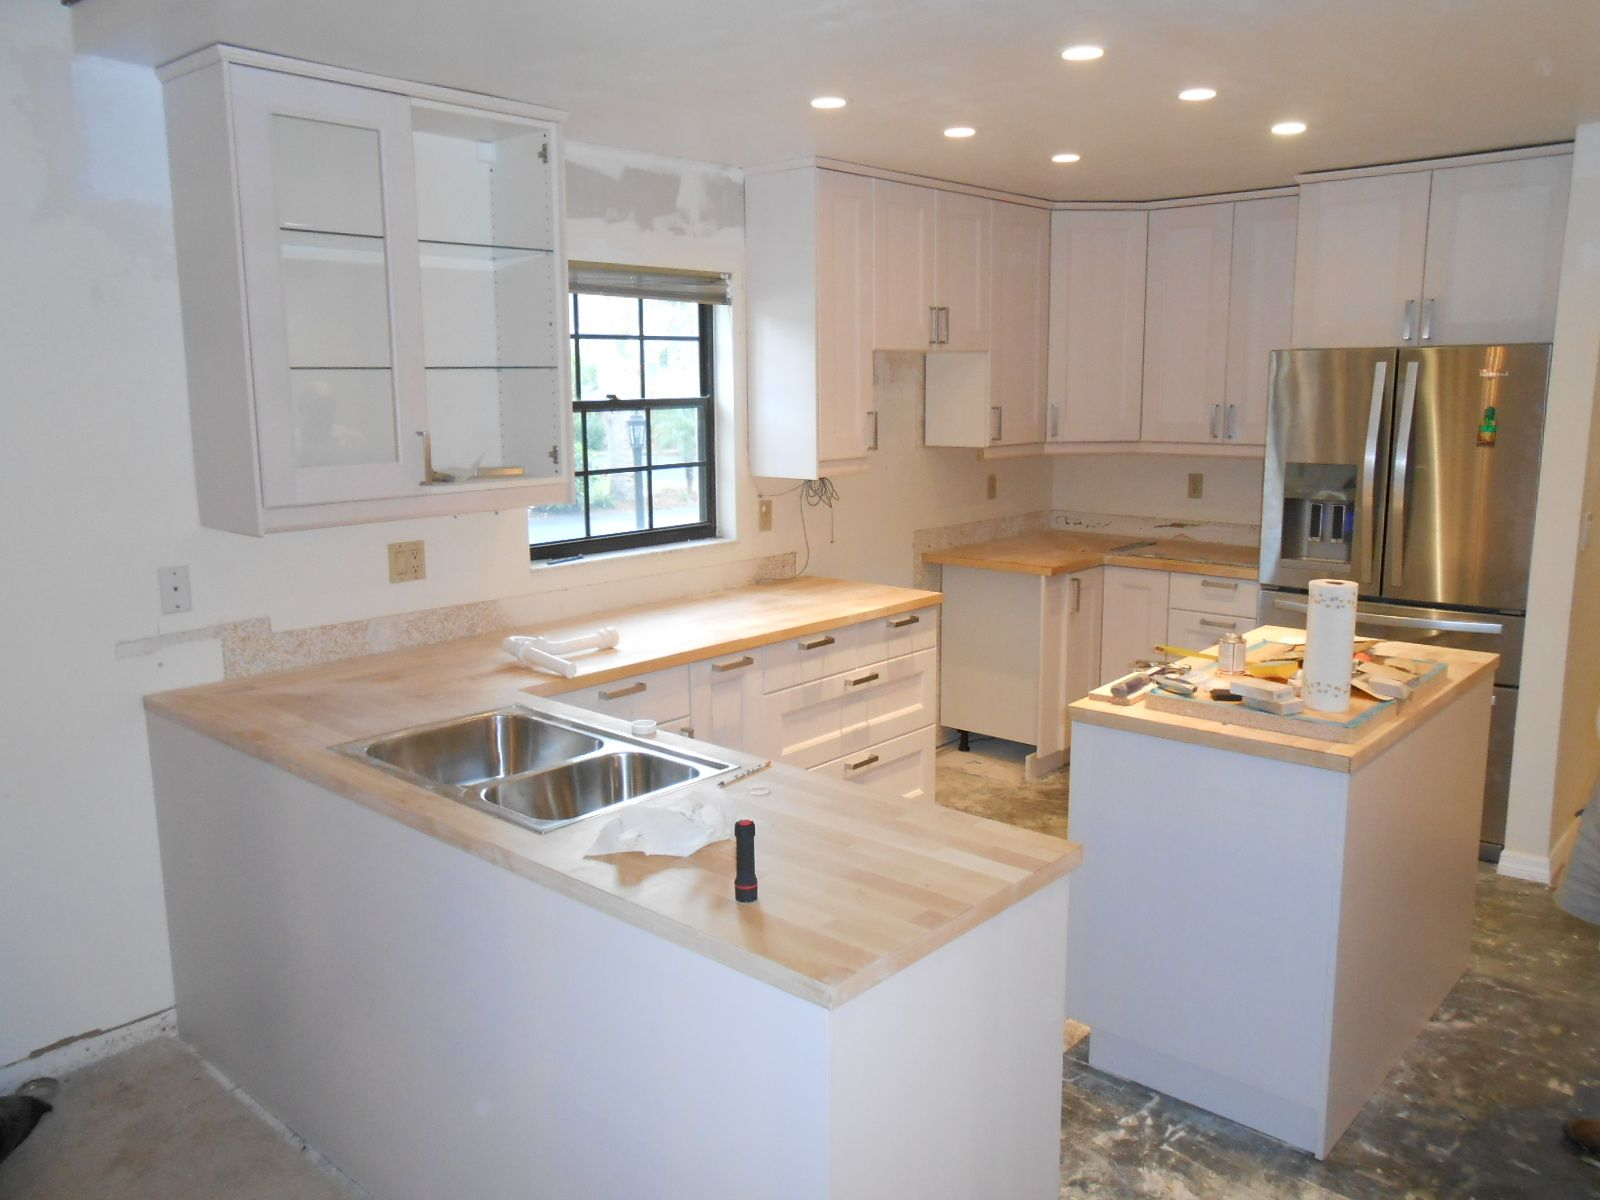 kitchen kitchen cabinets estimate olympus digital camera from kitchen cabinets cost per linear foot kitchen  ikea kitchen cabinets make your kitchen design idea be      rh   pinterest com